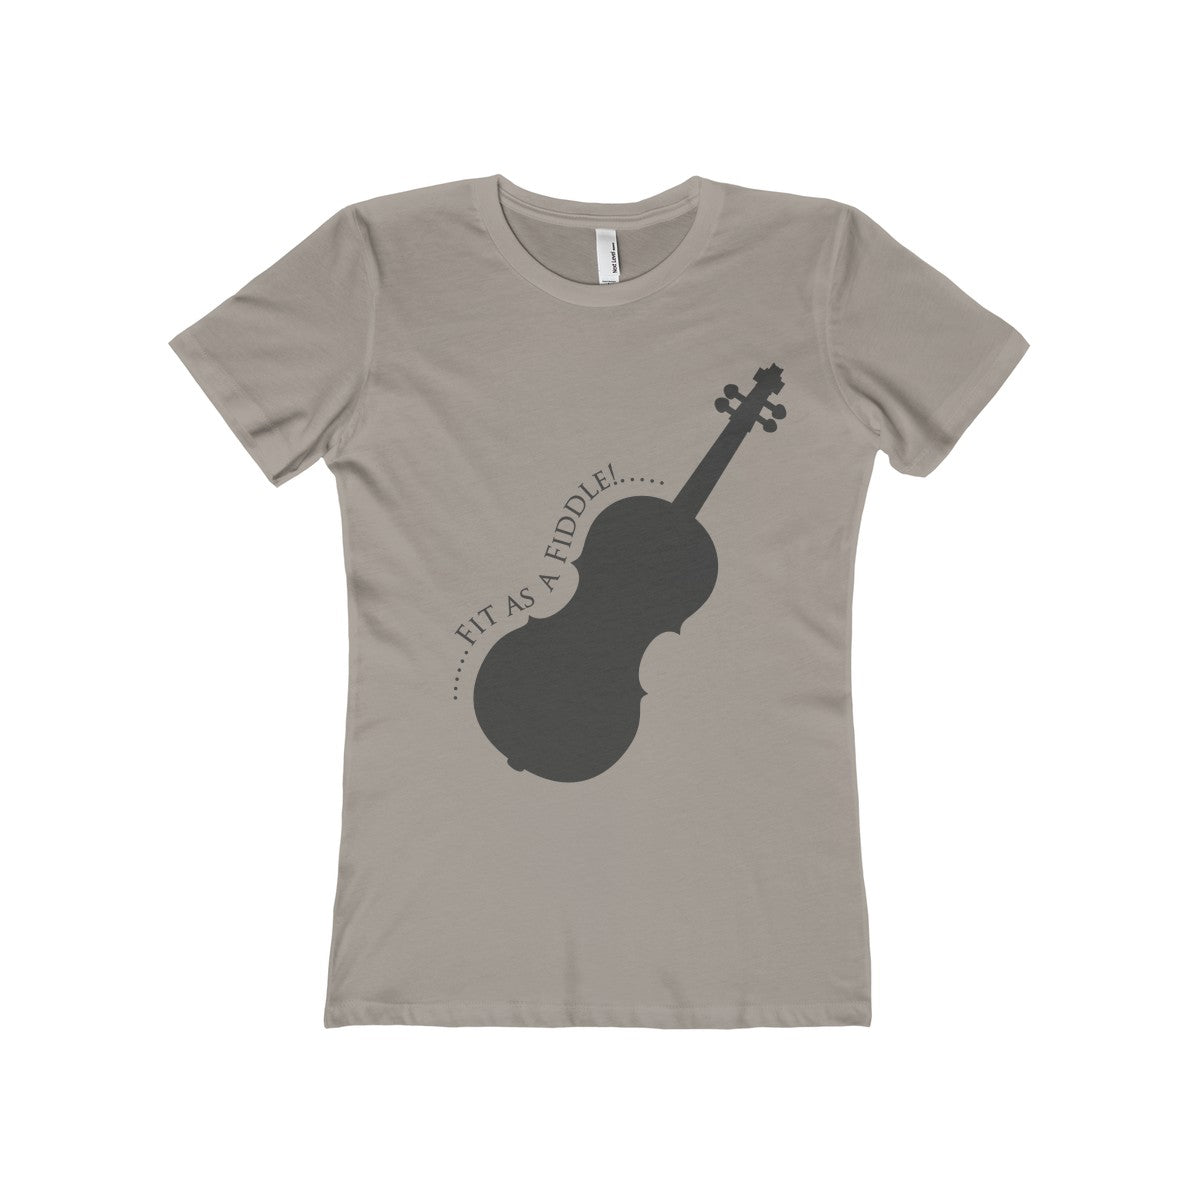 Fit as a Fiddle! Women's The Boyfriend Tee - PureDesignTees